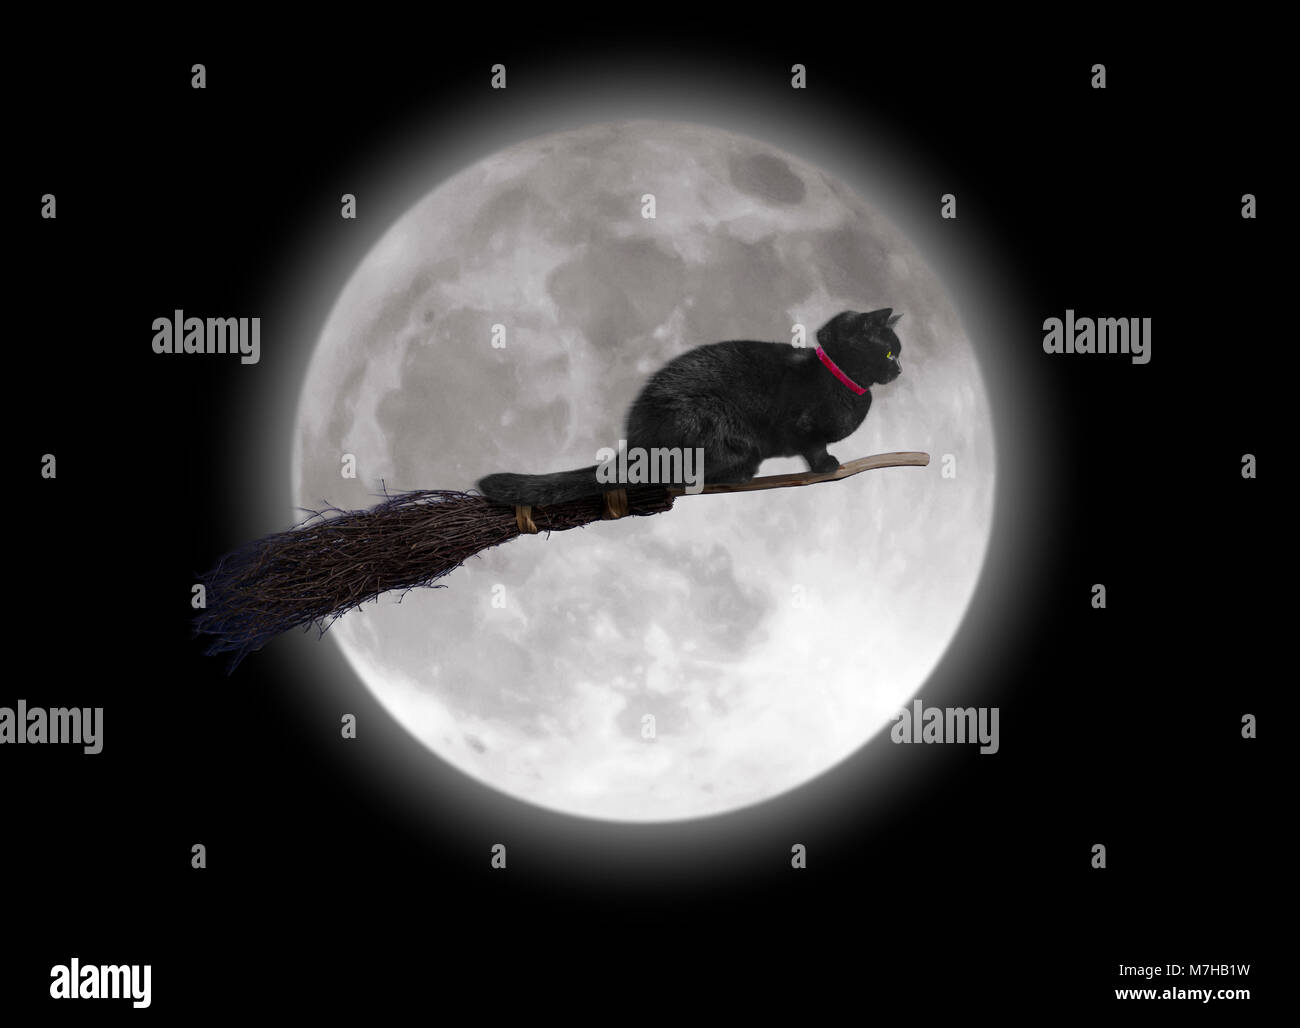 Black cat on a broomstick passing the full moon - Stock Image